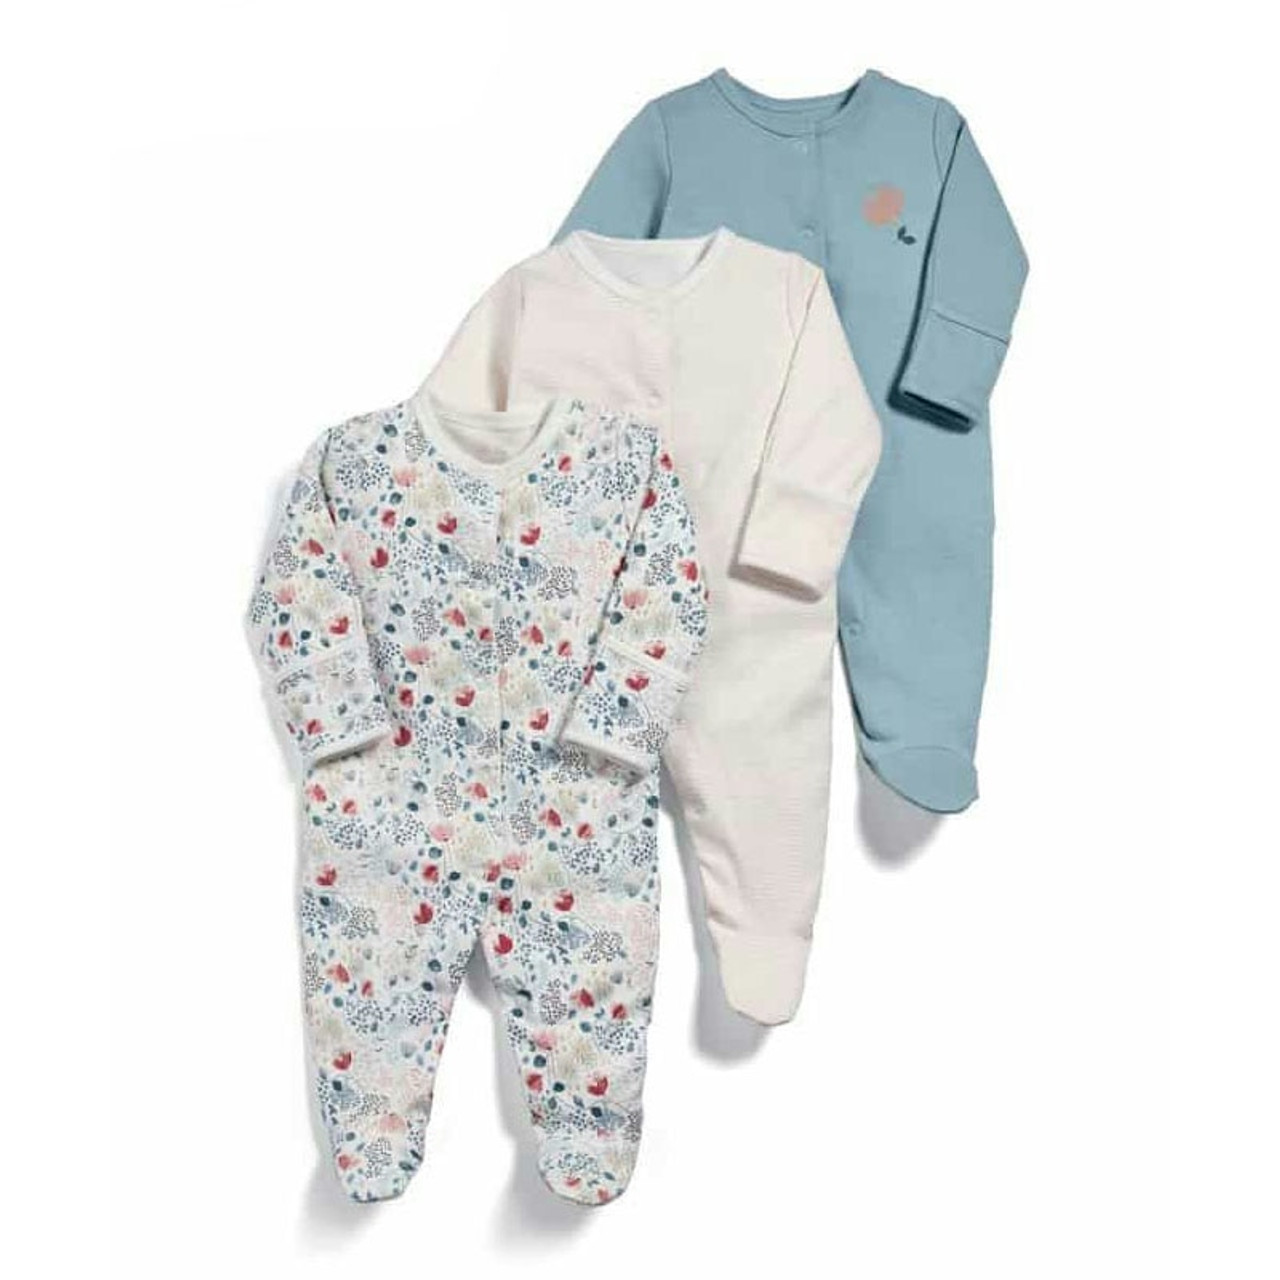 A1BY-5US Infant Babys Cotton Long Sleeve Foodie Jumpsuit Romper One-Piece Romper Clothes